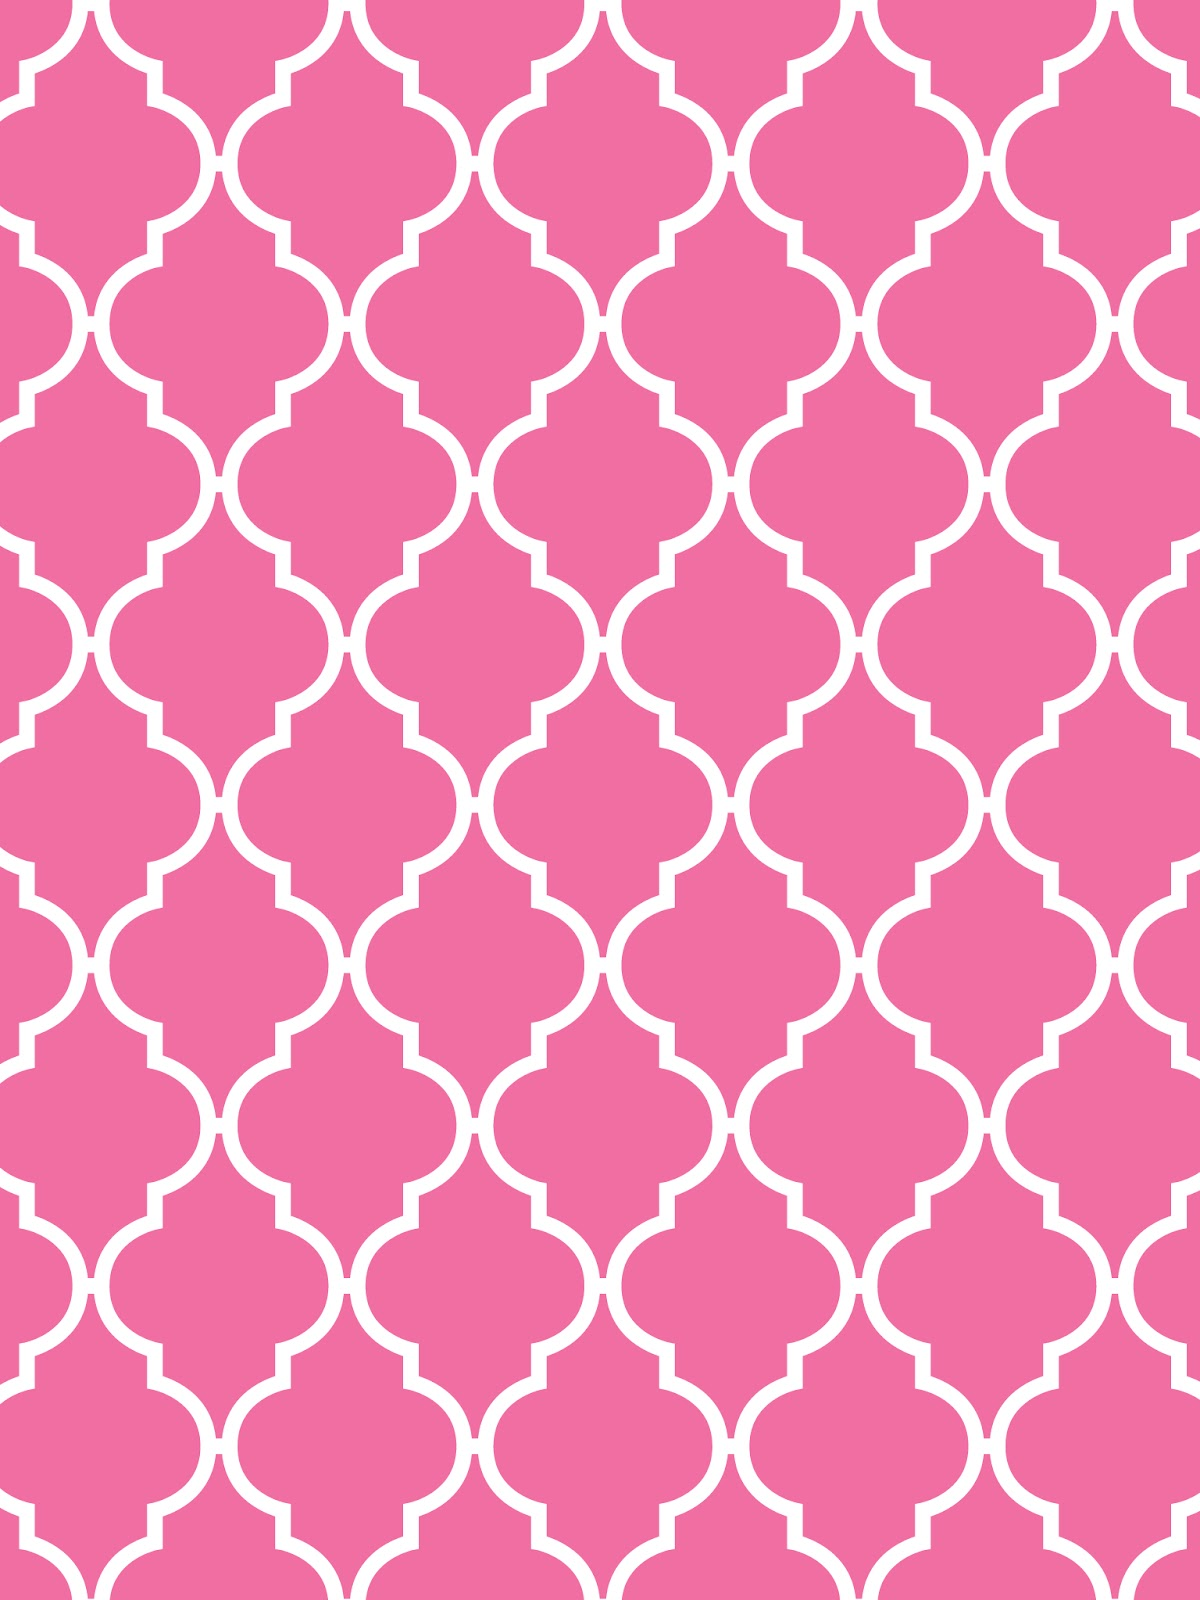 Julesoca blog quatrefoil gray pink baby blue sand for Gray and white wallpaper designs